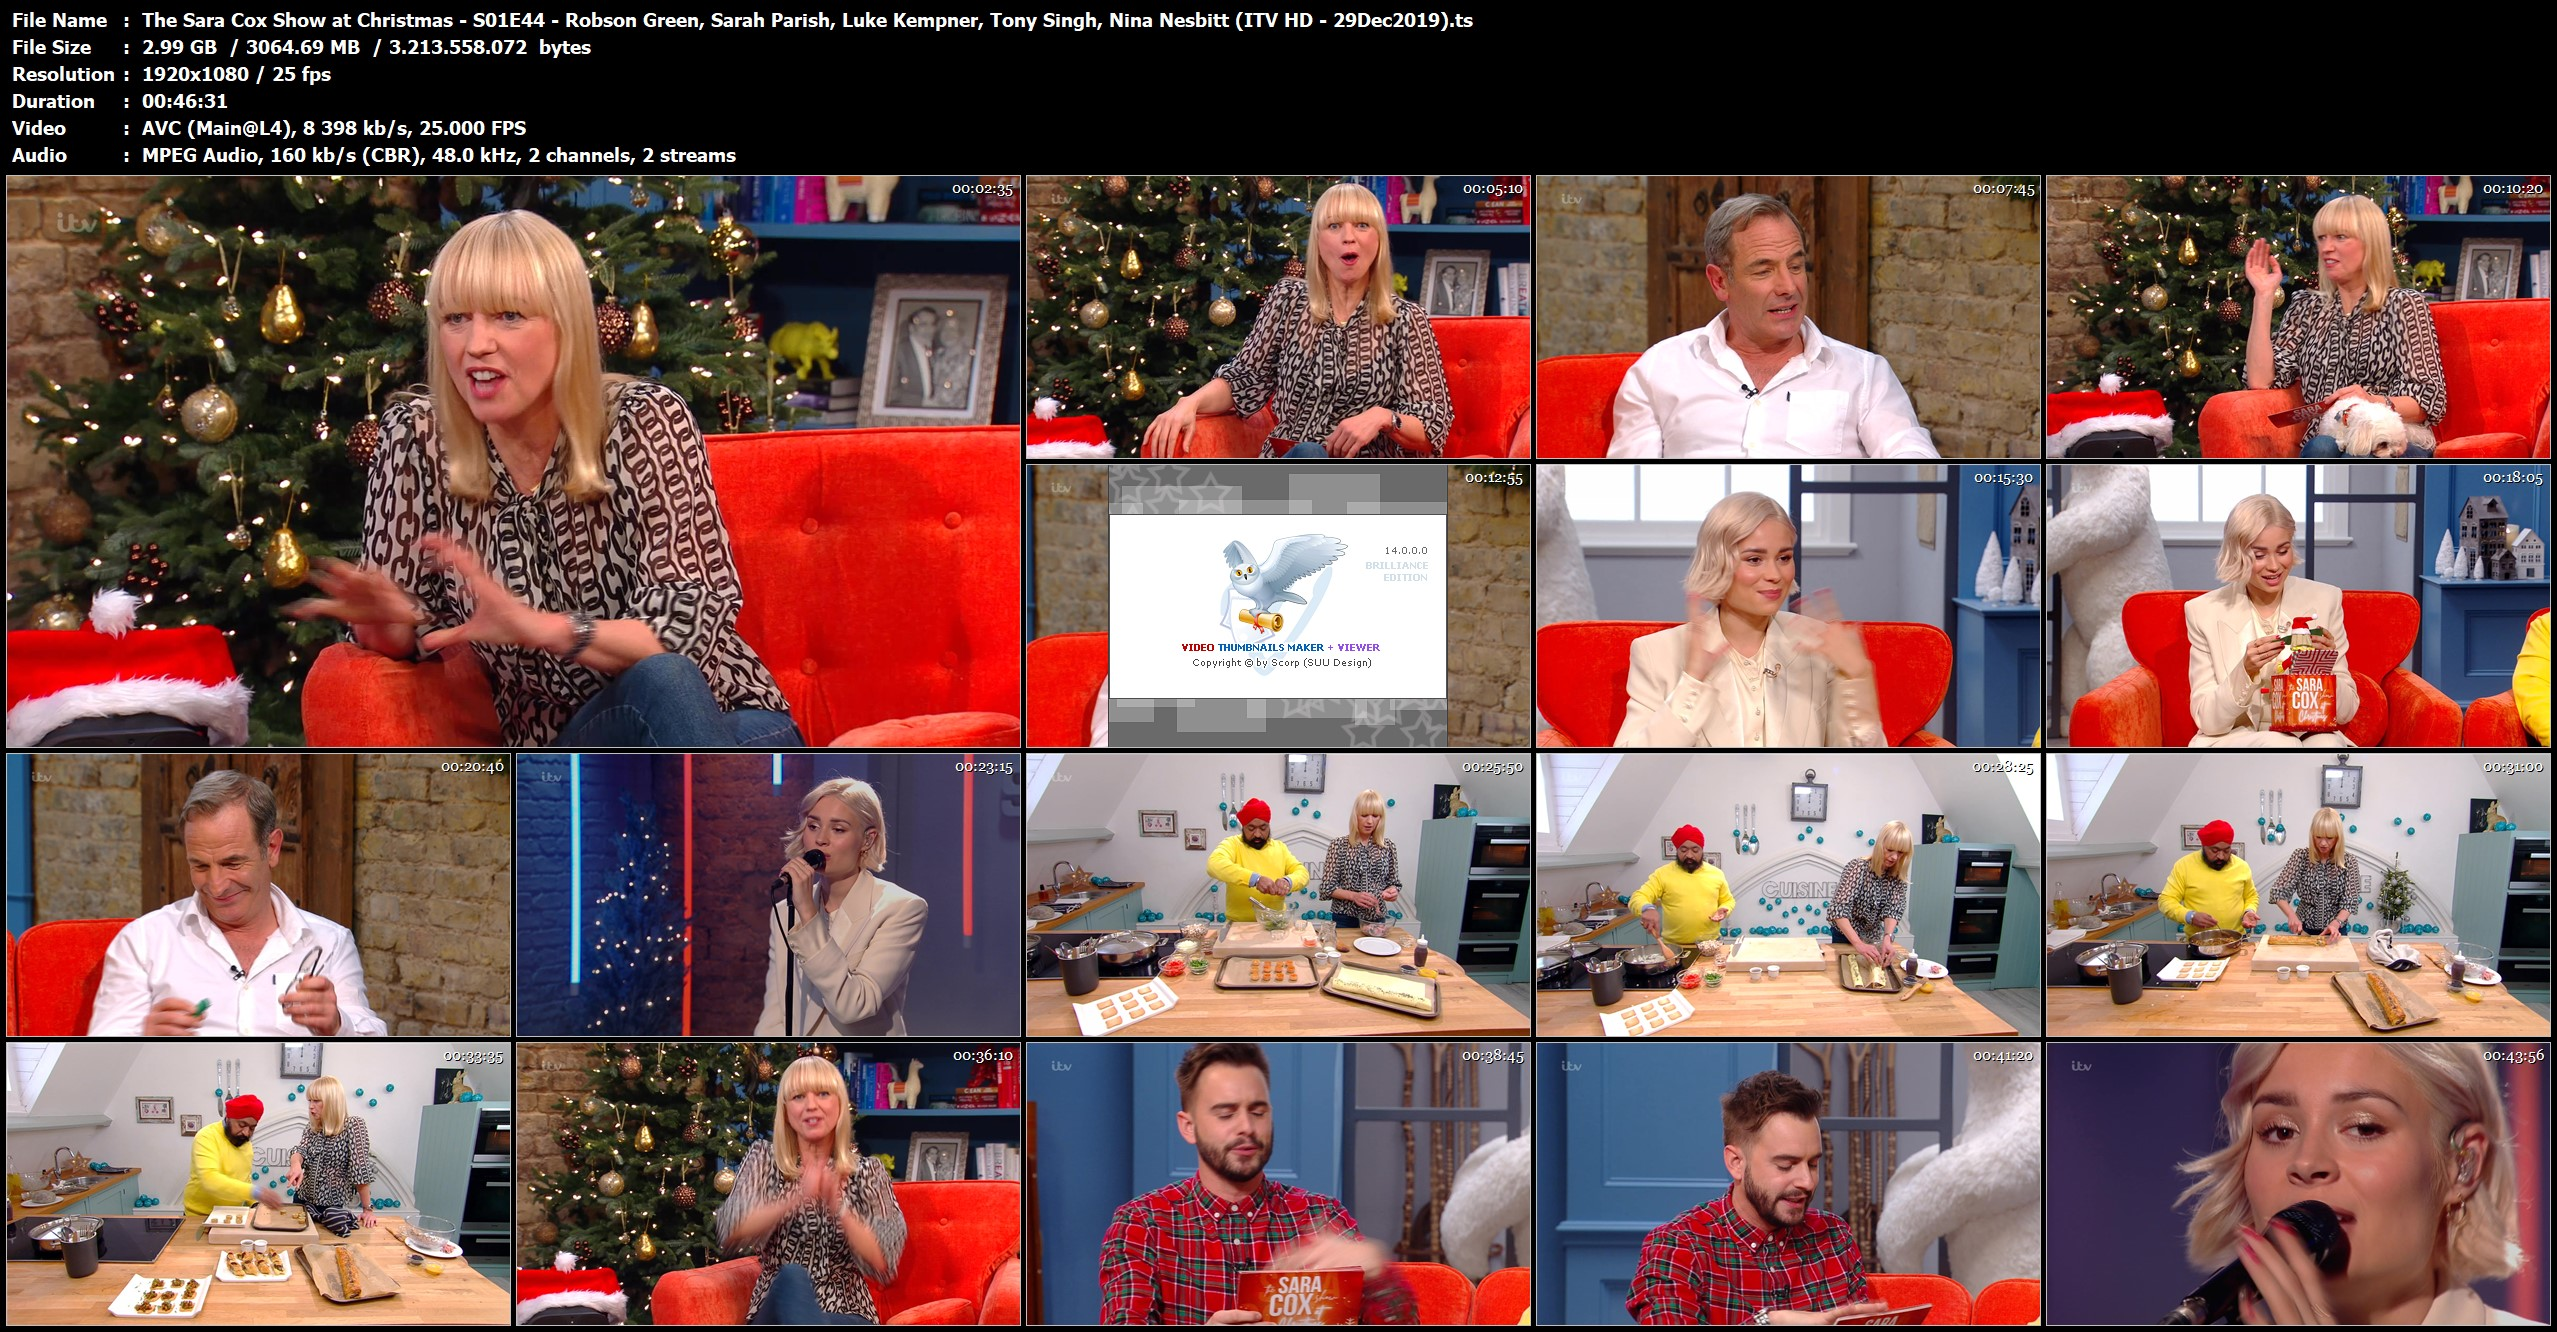 The Sara Cox Show At Christmas S01e44 Robson Green Sarah Parish Luke Kempner Tony Singh Nina Nesbitt 29dec2019 Hd Hqcelebcorner